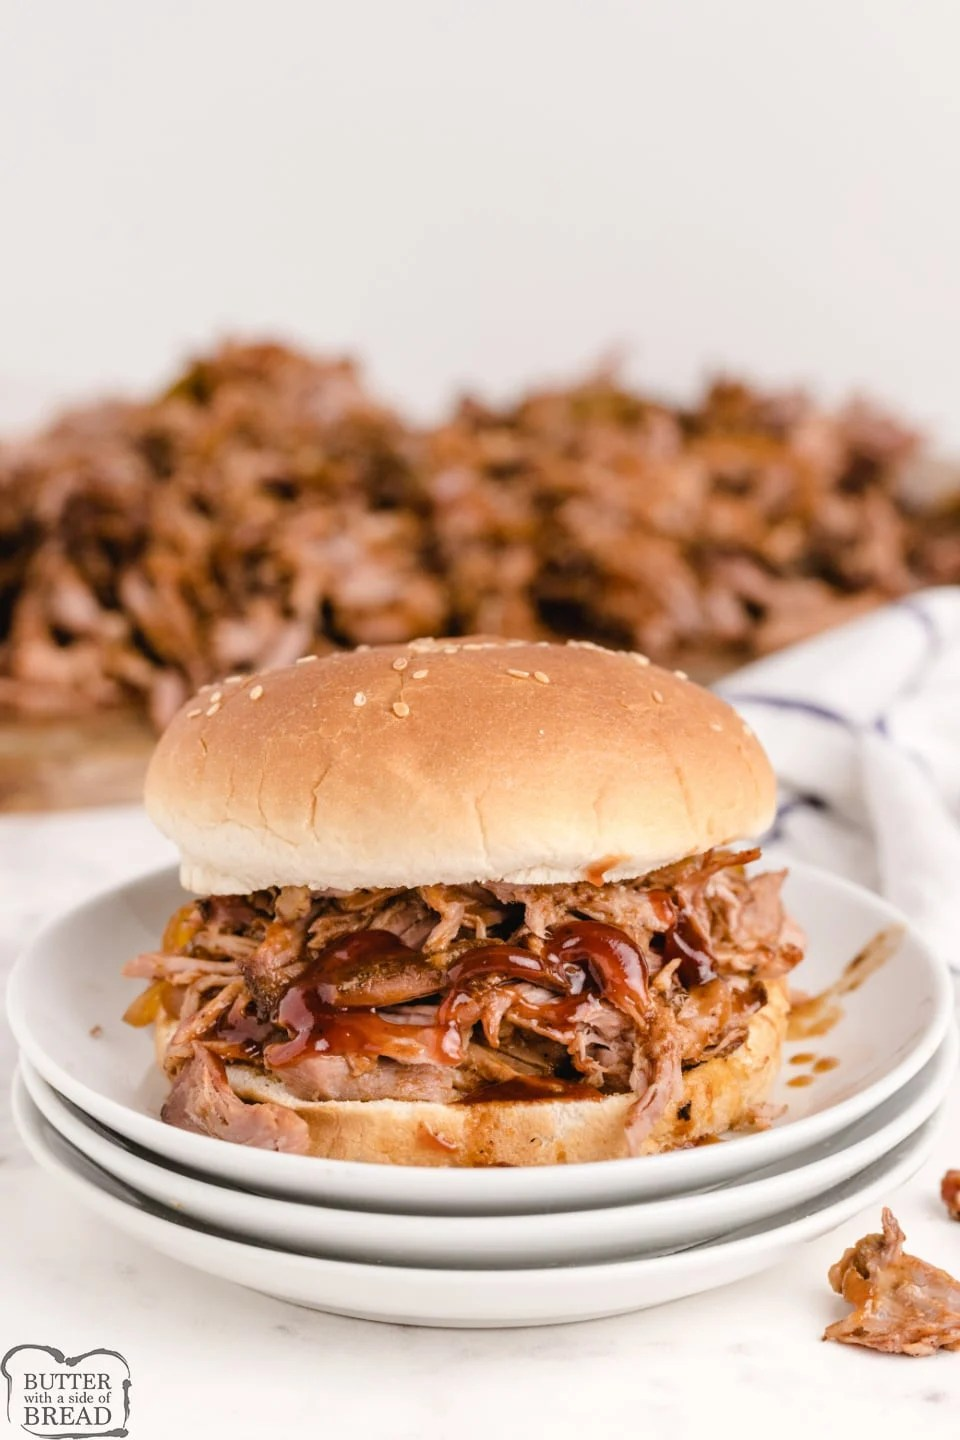 Slow Cooker BBQ Pulled Pork is moist, tender and packed with flavor. This simple crockpot pulled pork recipe is perfect for sandwiches, or even just served over rice.